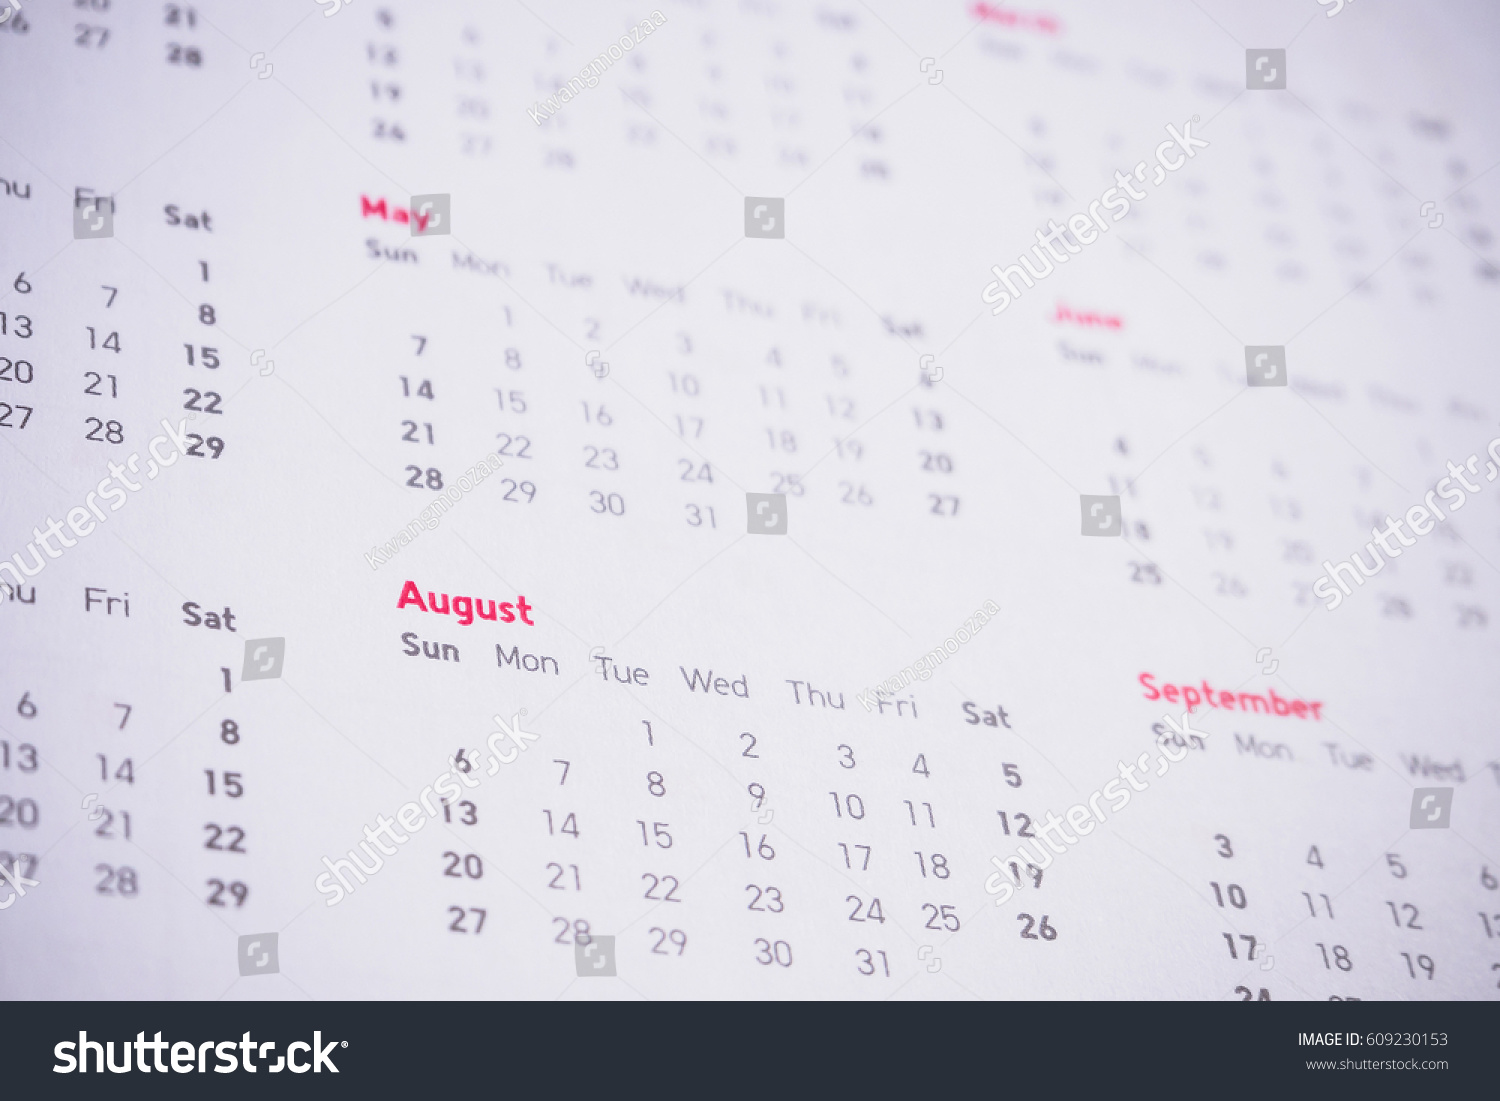 Year To Date Calendar : Months dates on calendar new year stock photo